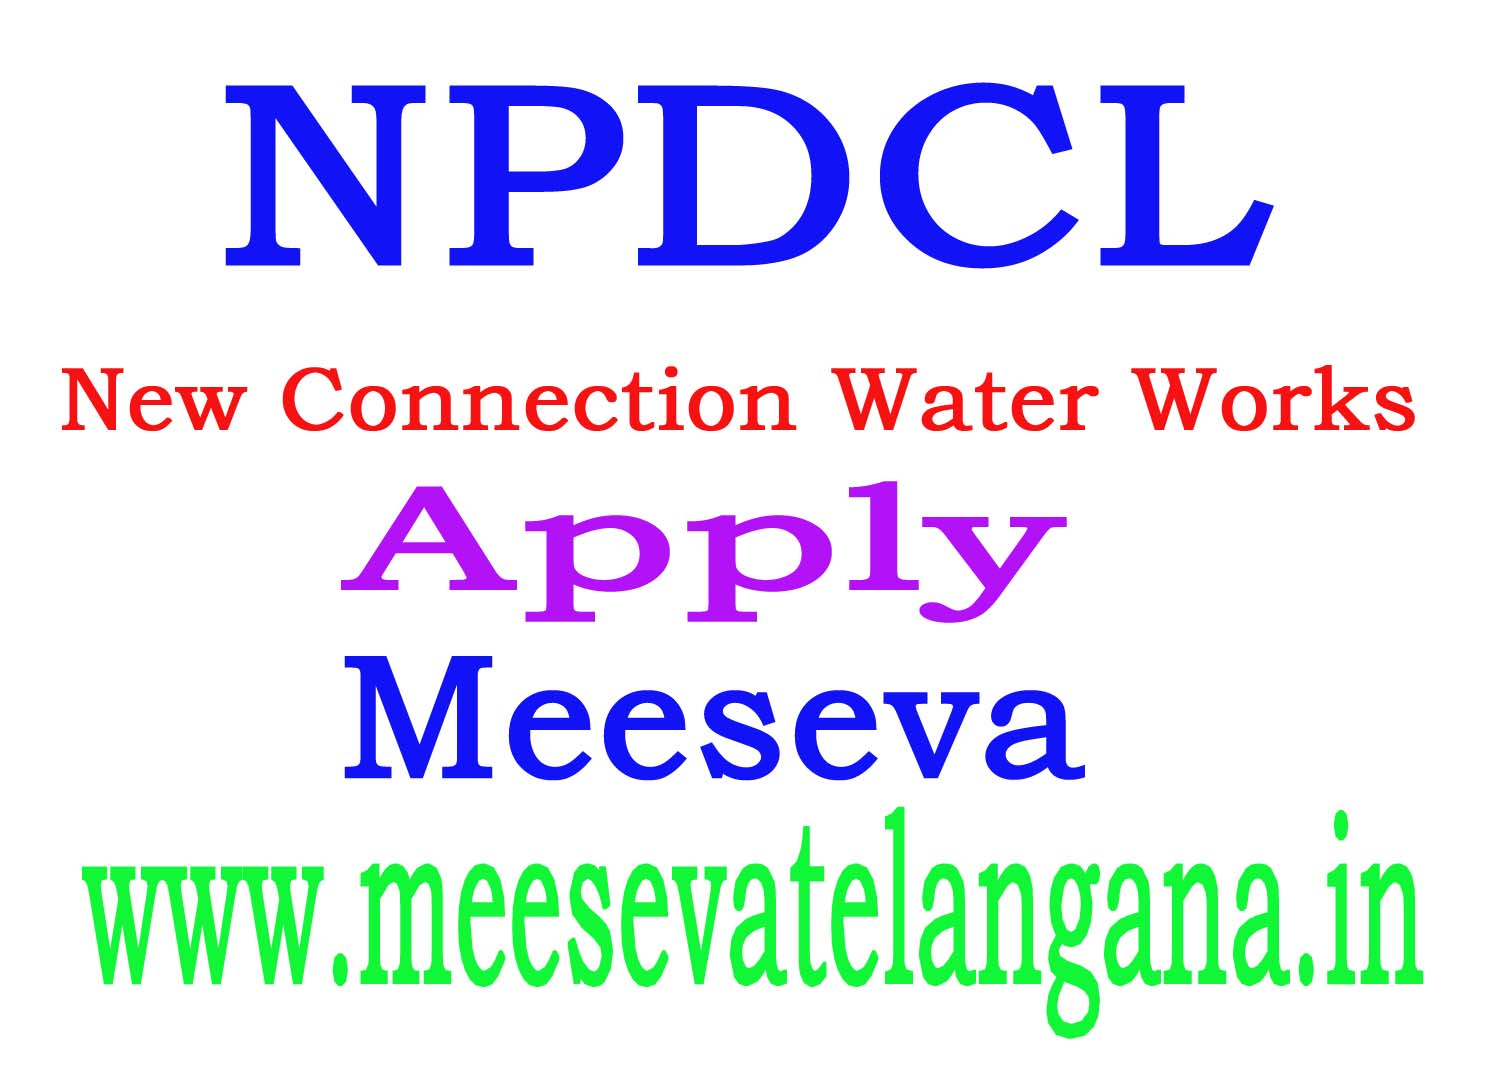 NEW CONNECTION SERVICE-6B-WATER WORKS APPLY MEESEVA All